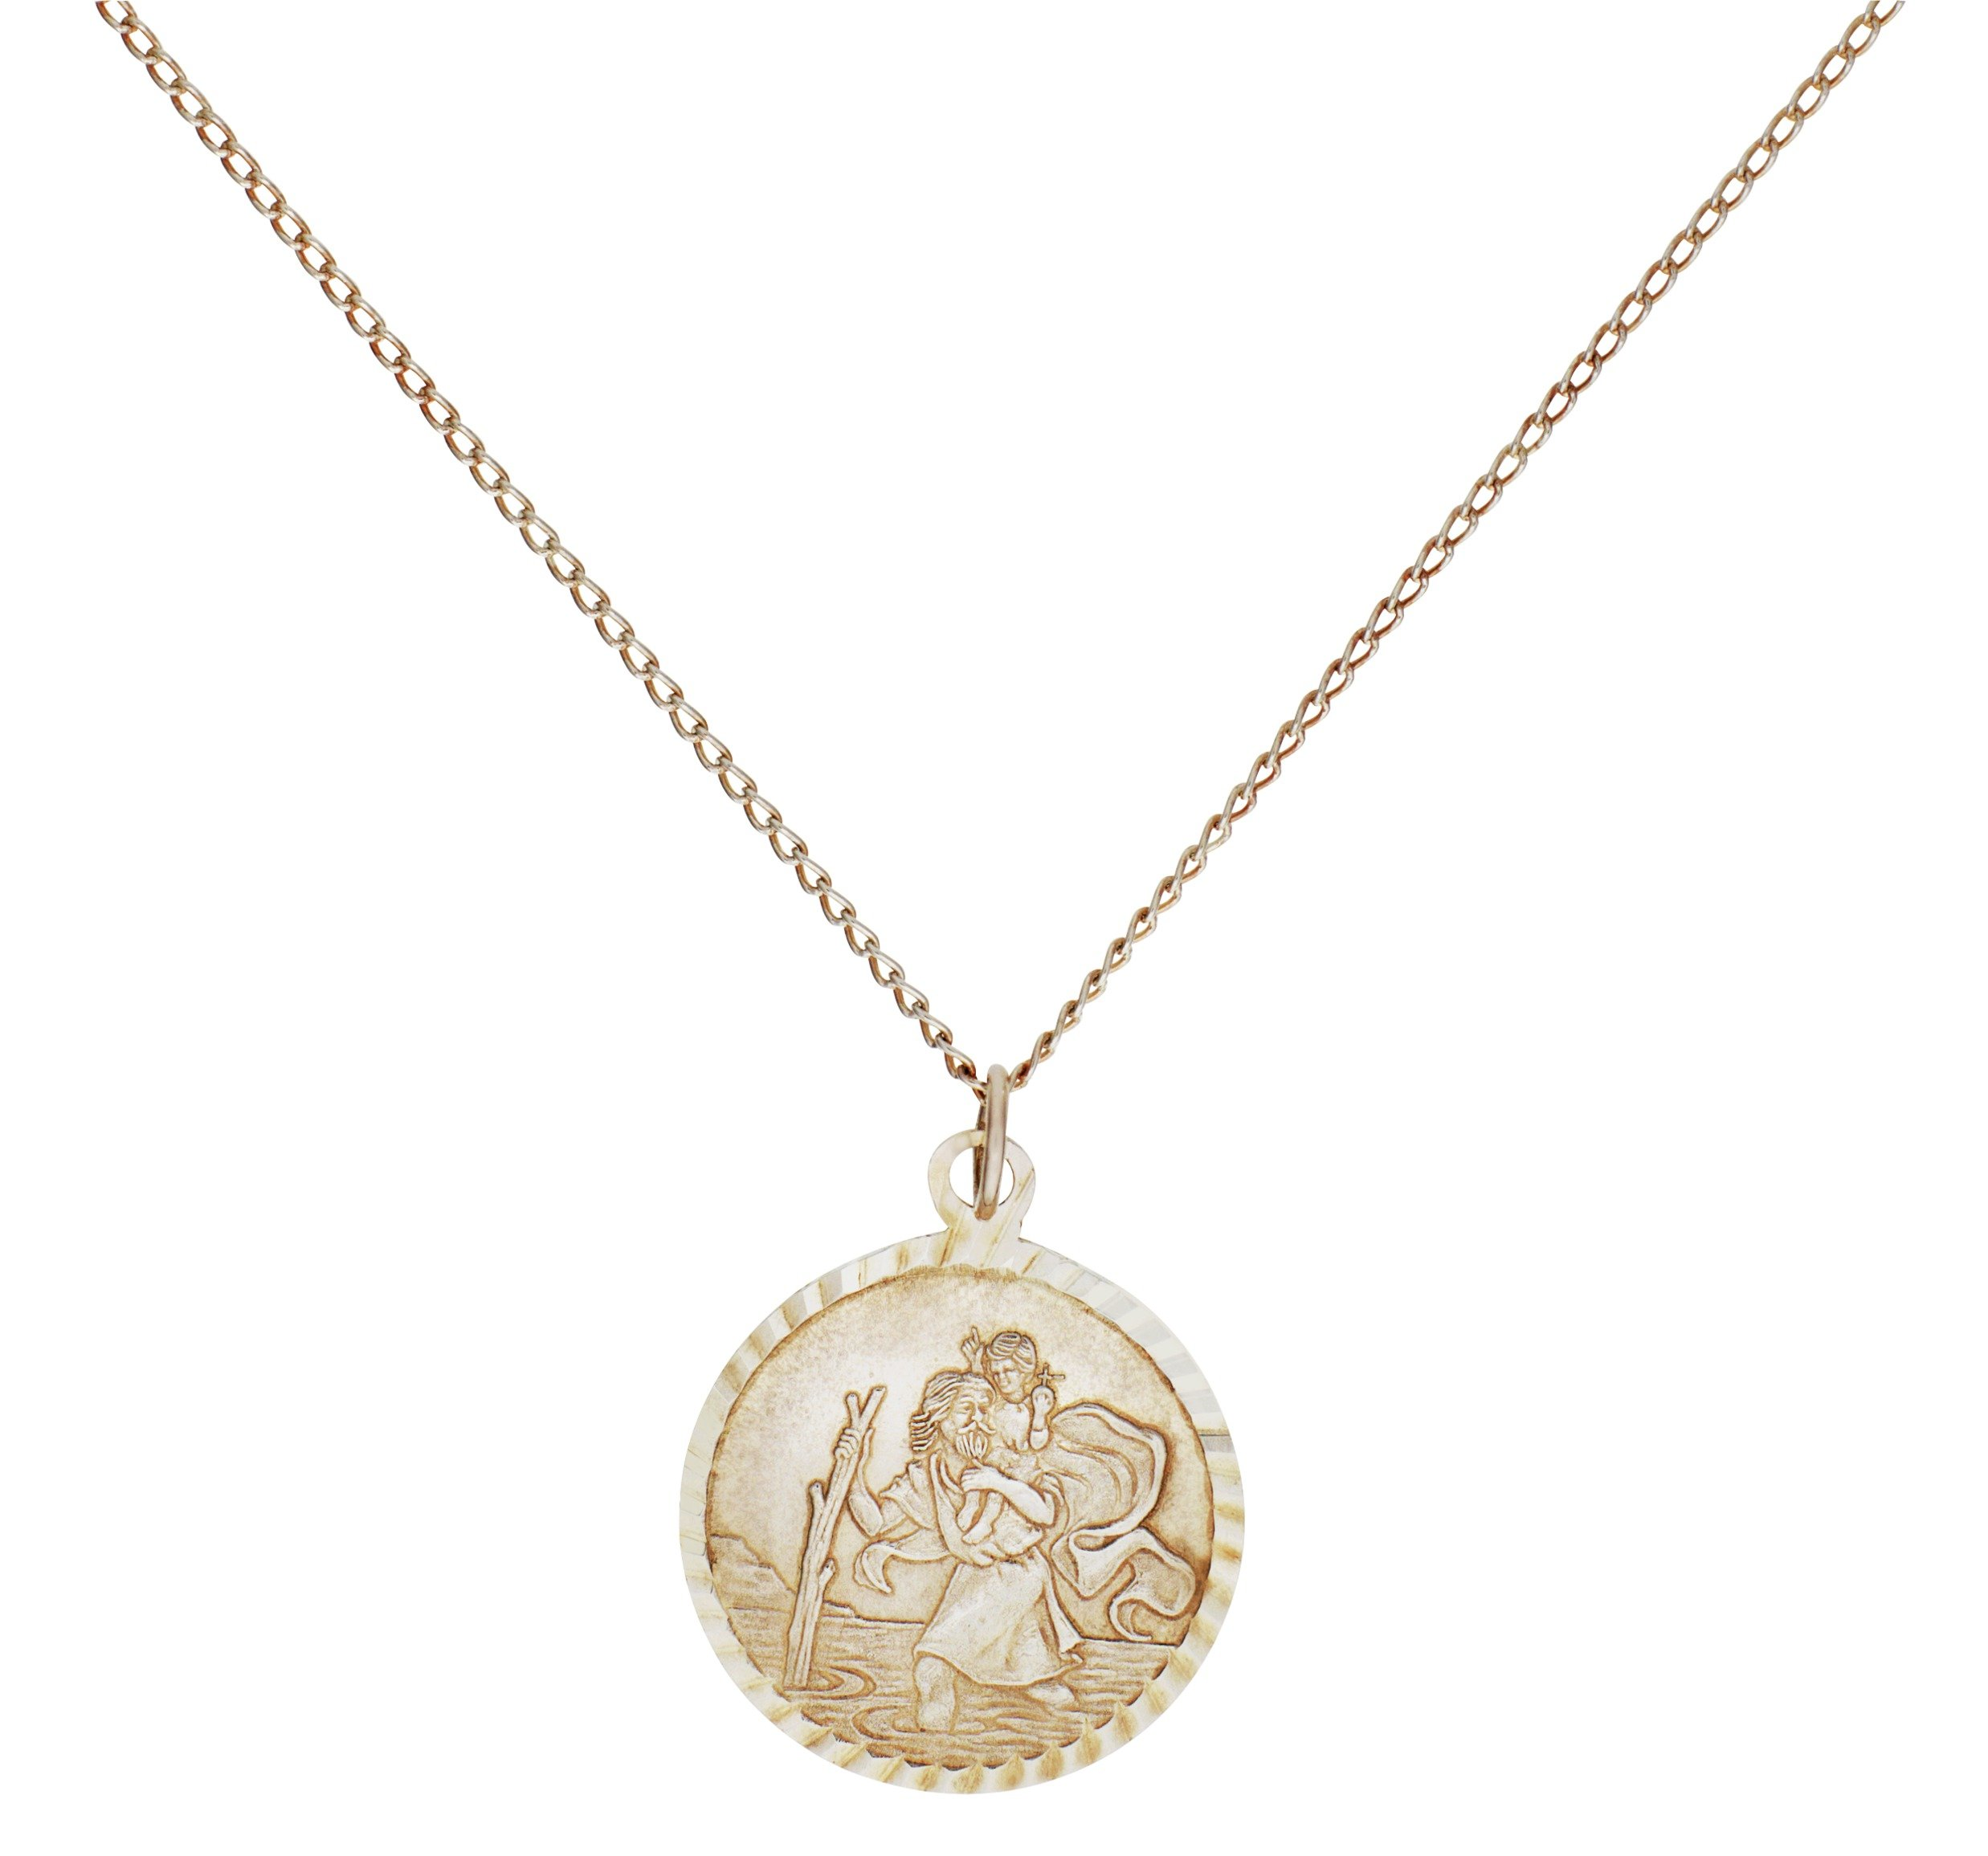 Image of Sterling Silver - St. Christopher Pendant.